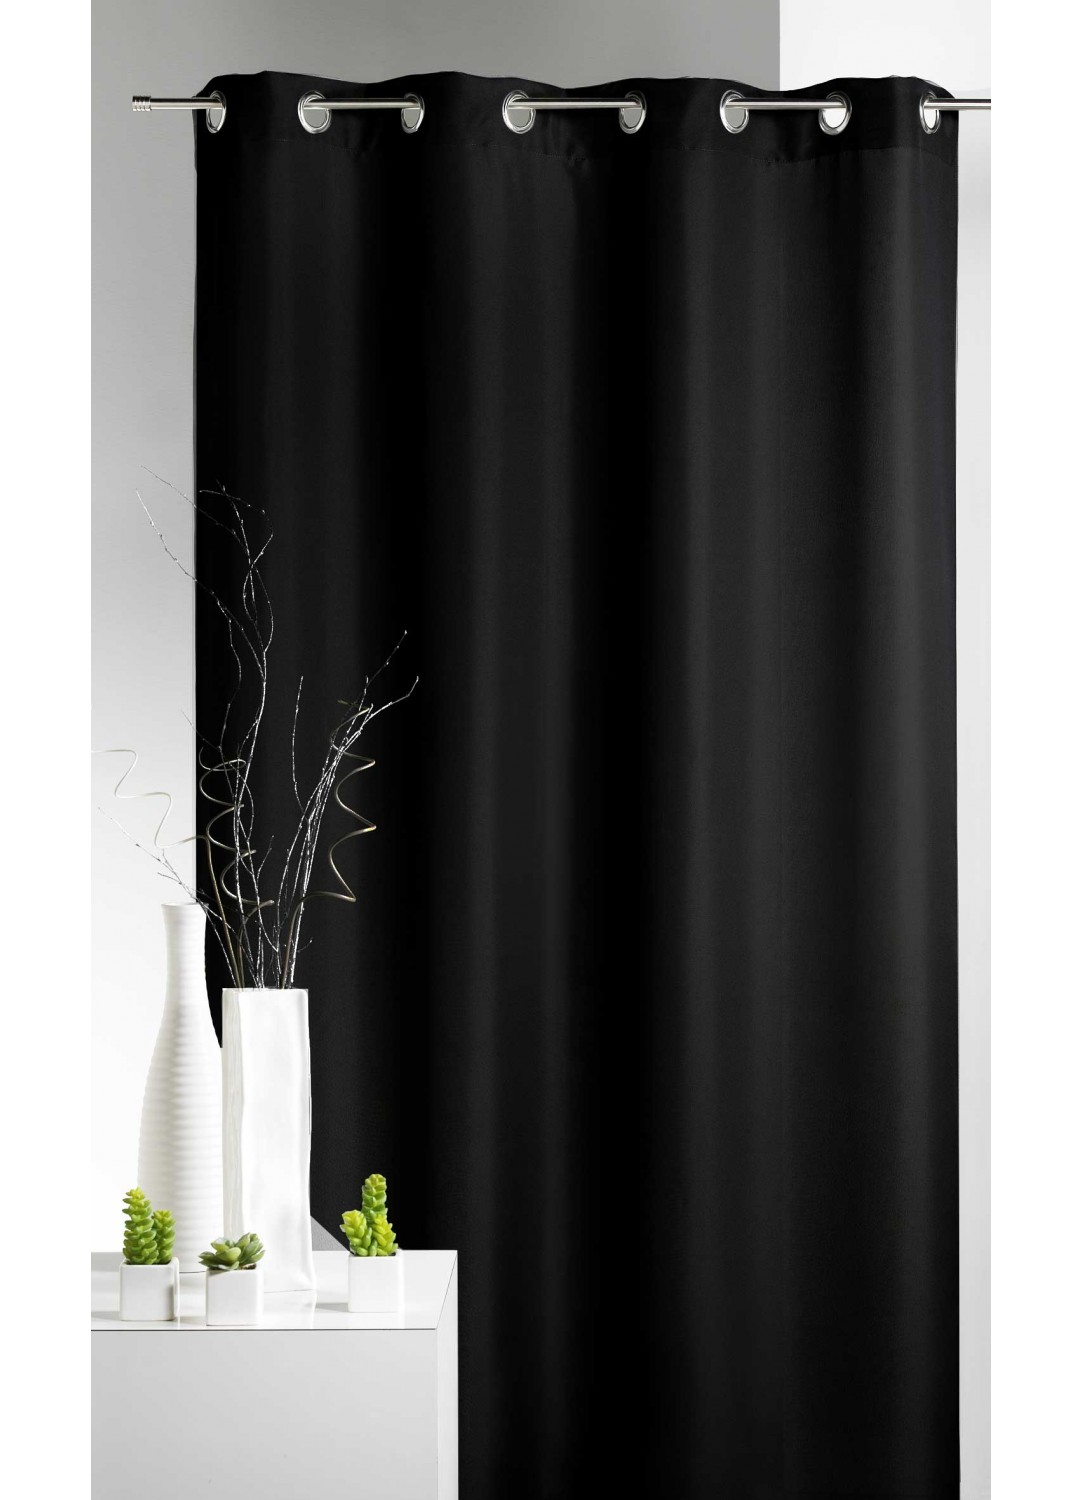 rideau 80 occultant avec grande largeur noir perle ivoire taupe ecru. Black Bedroom Furniture Sets. Home Design Ideas